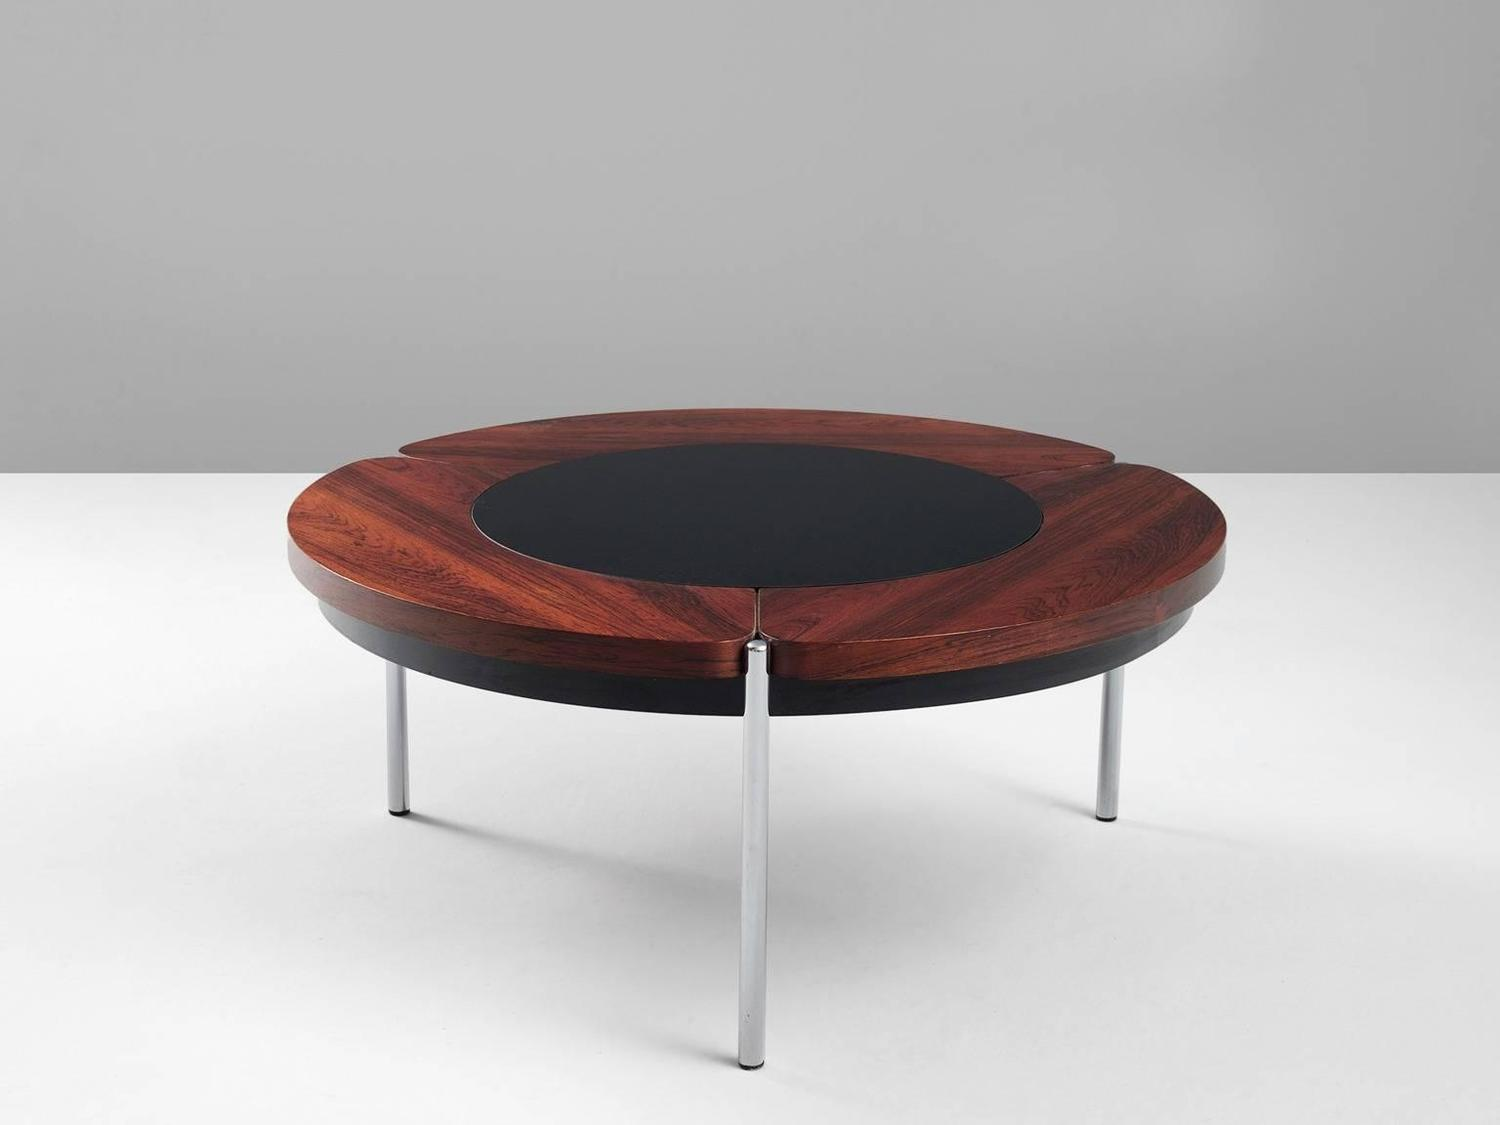 Round coffee table in rosewood and glass for sale at 1stdibs for Round glass coffee tables for sale